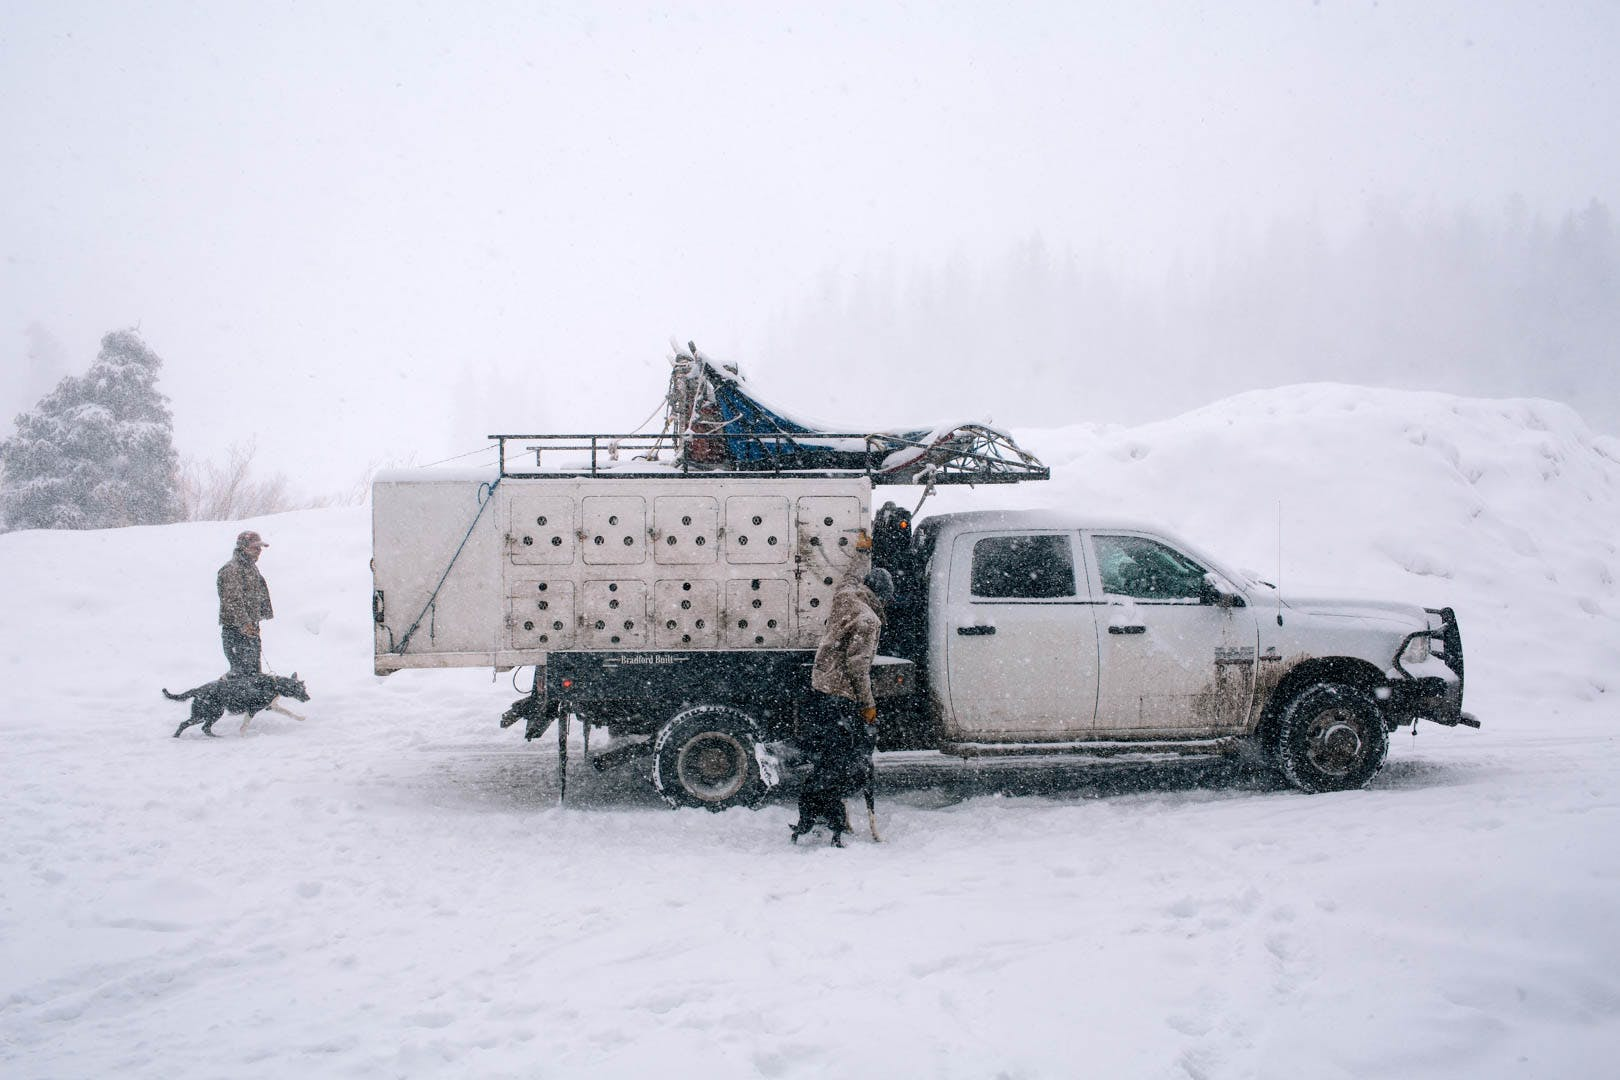 Rugged truck with dog cages on the back parked in the snow. Snow falls with wintery, blizzard like conditions.